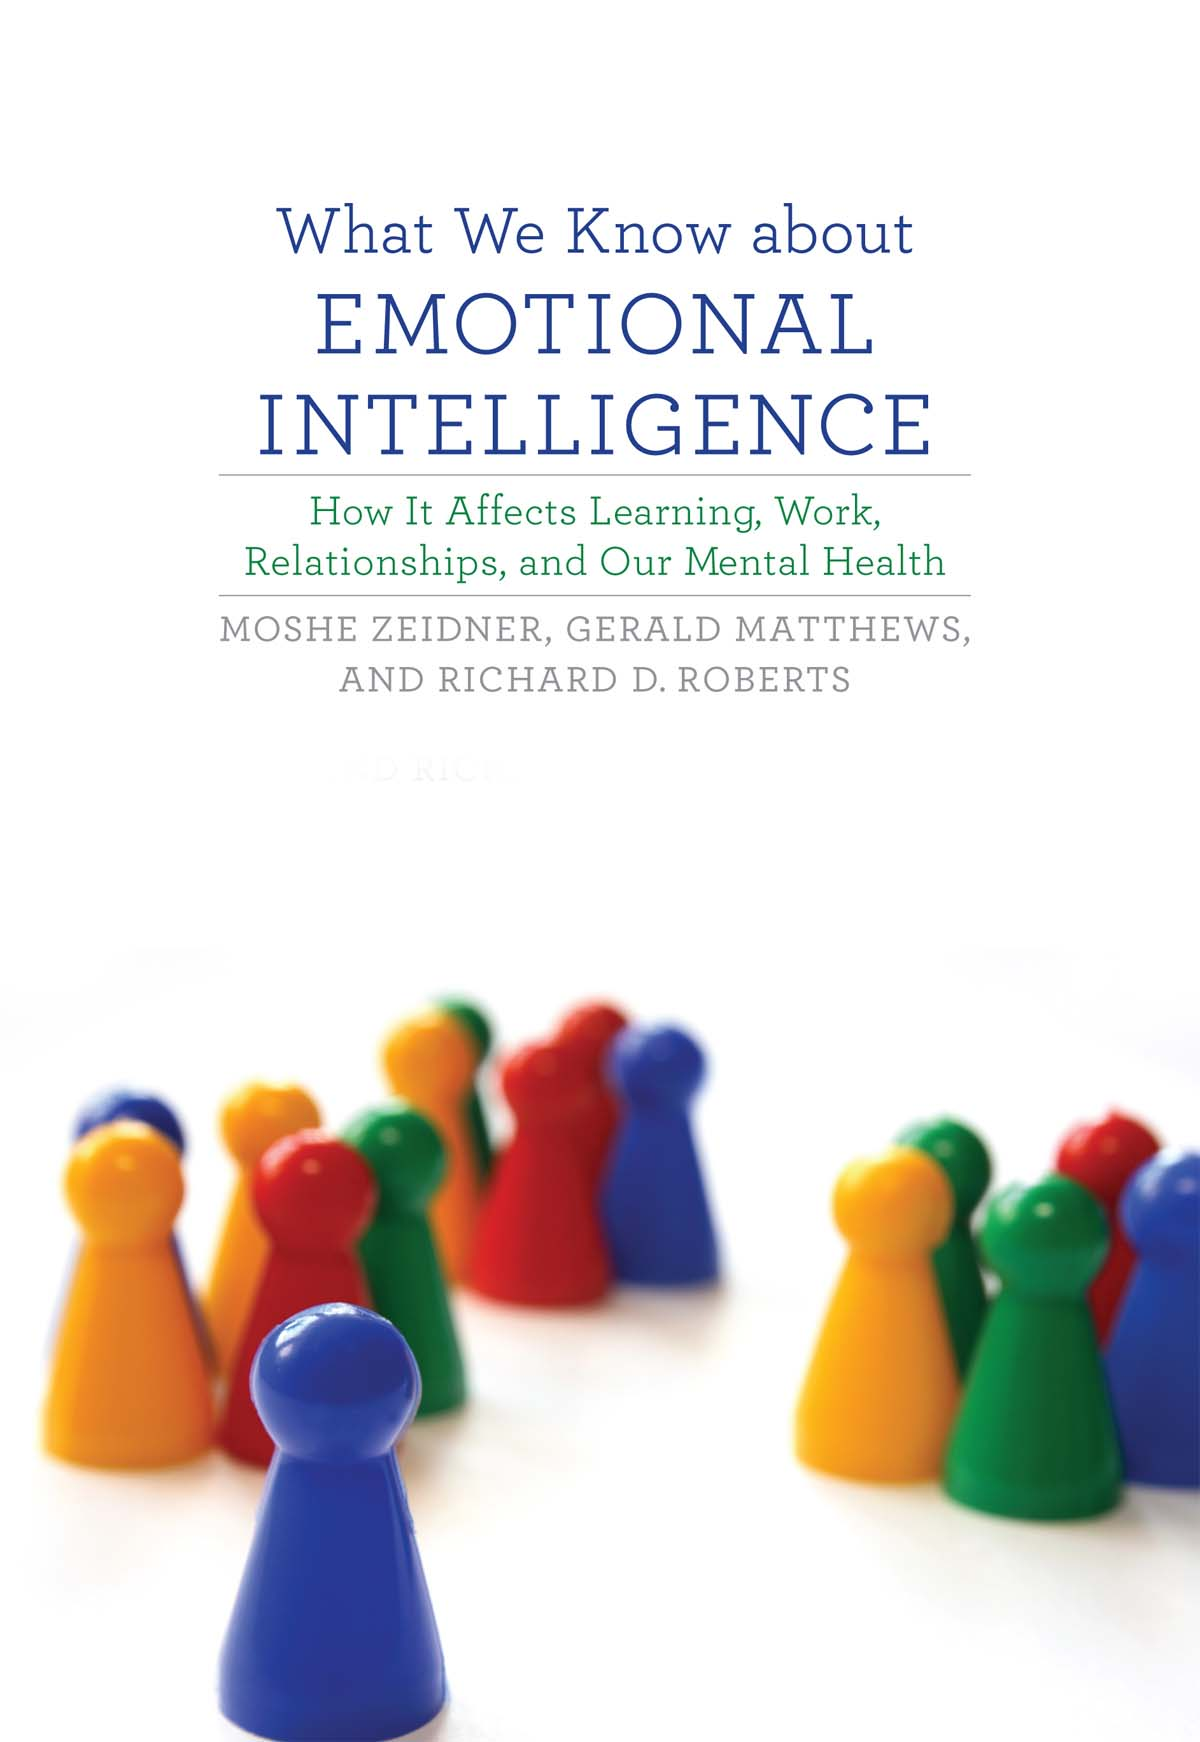 emotional intelligence, what we know, book, blog